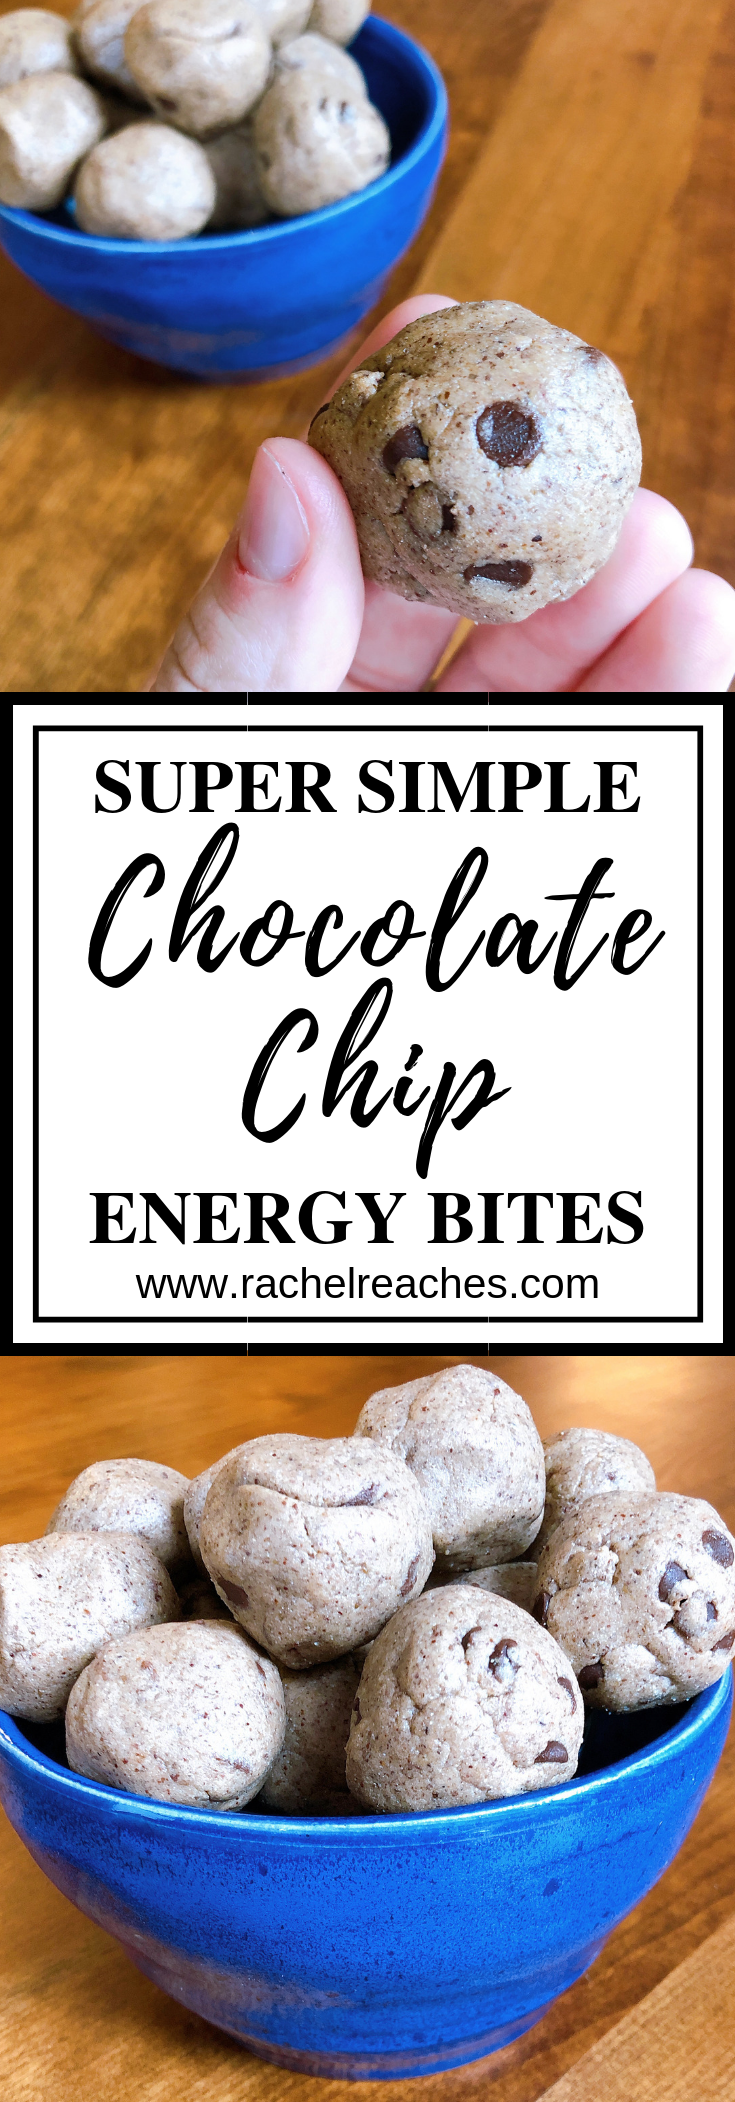 Chocolate Chip Energy Bites - Healthy Eating.png